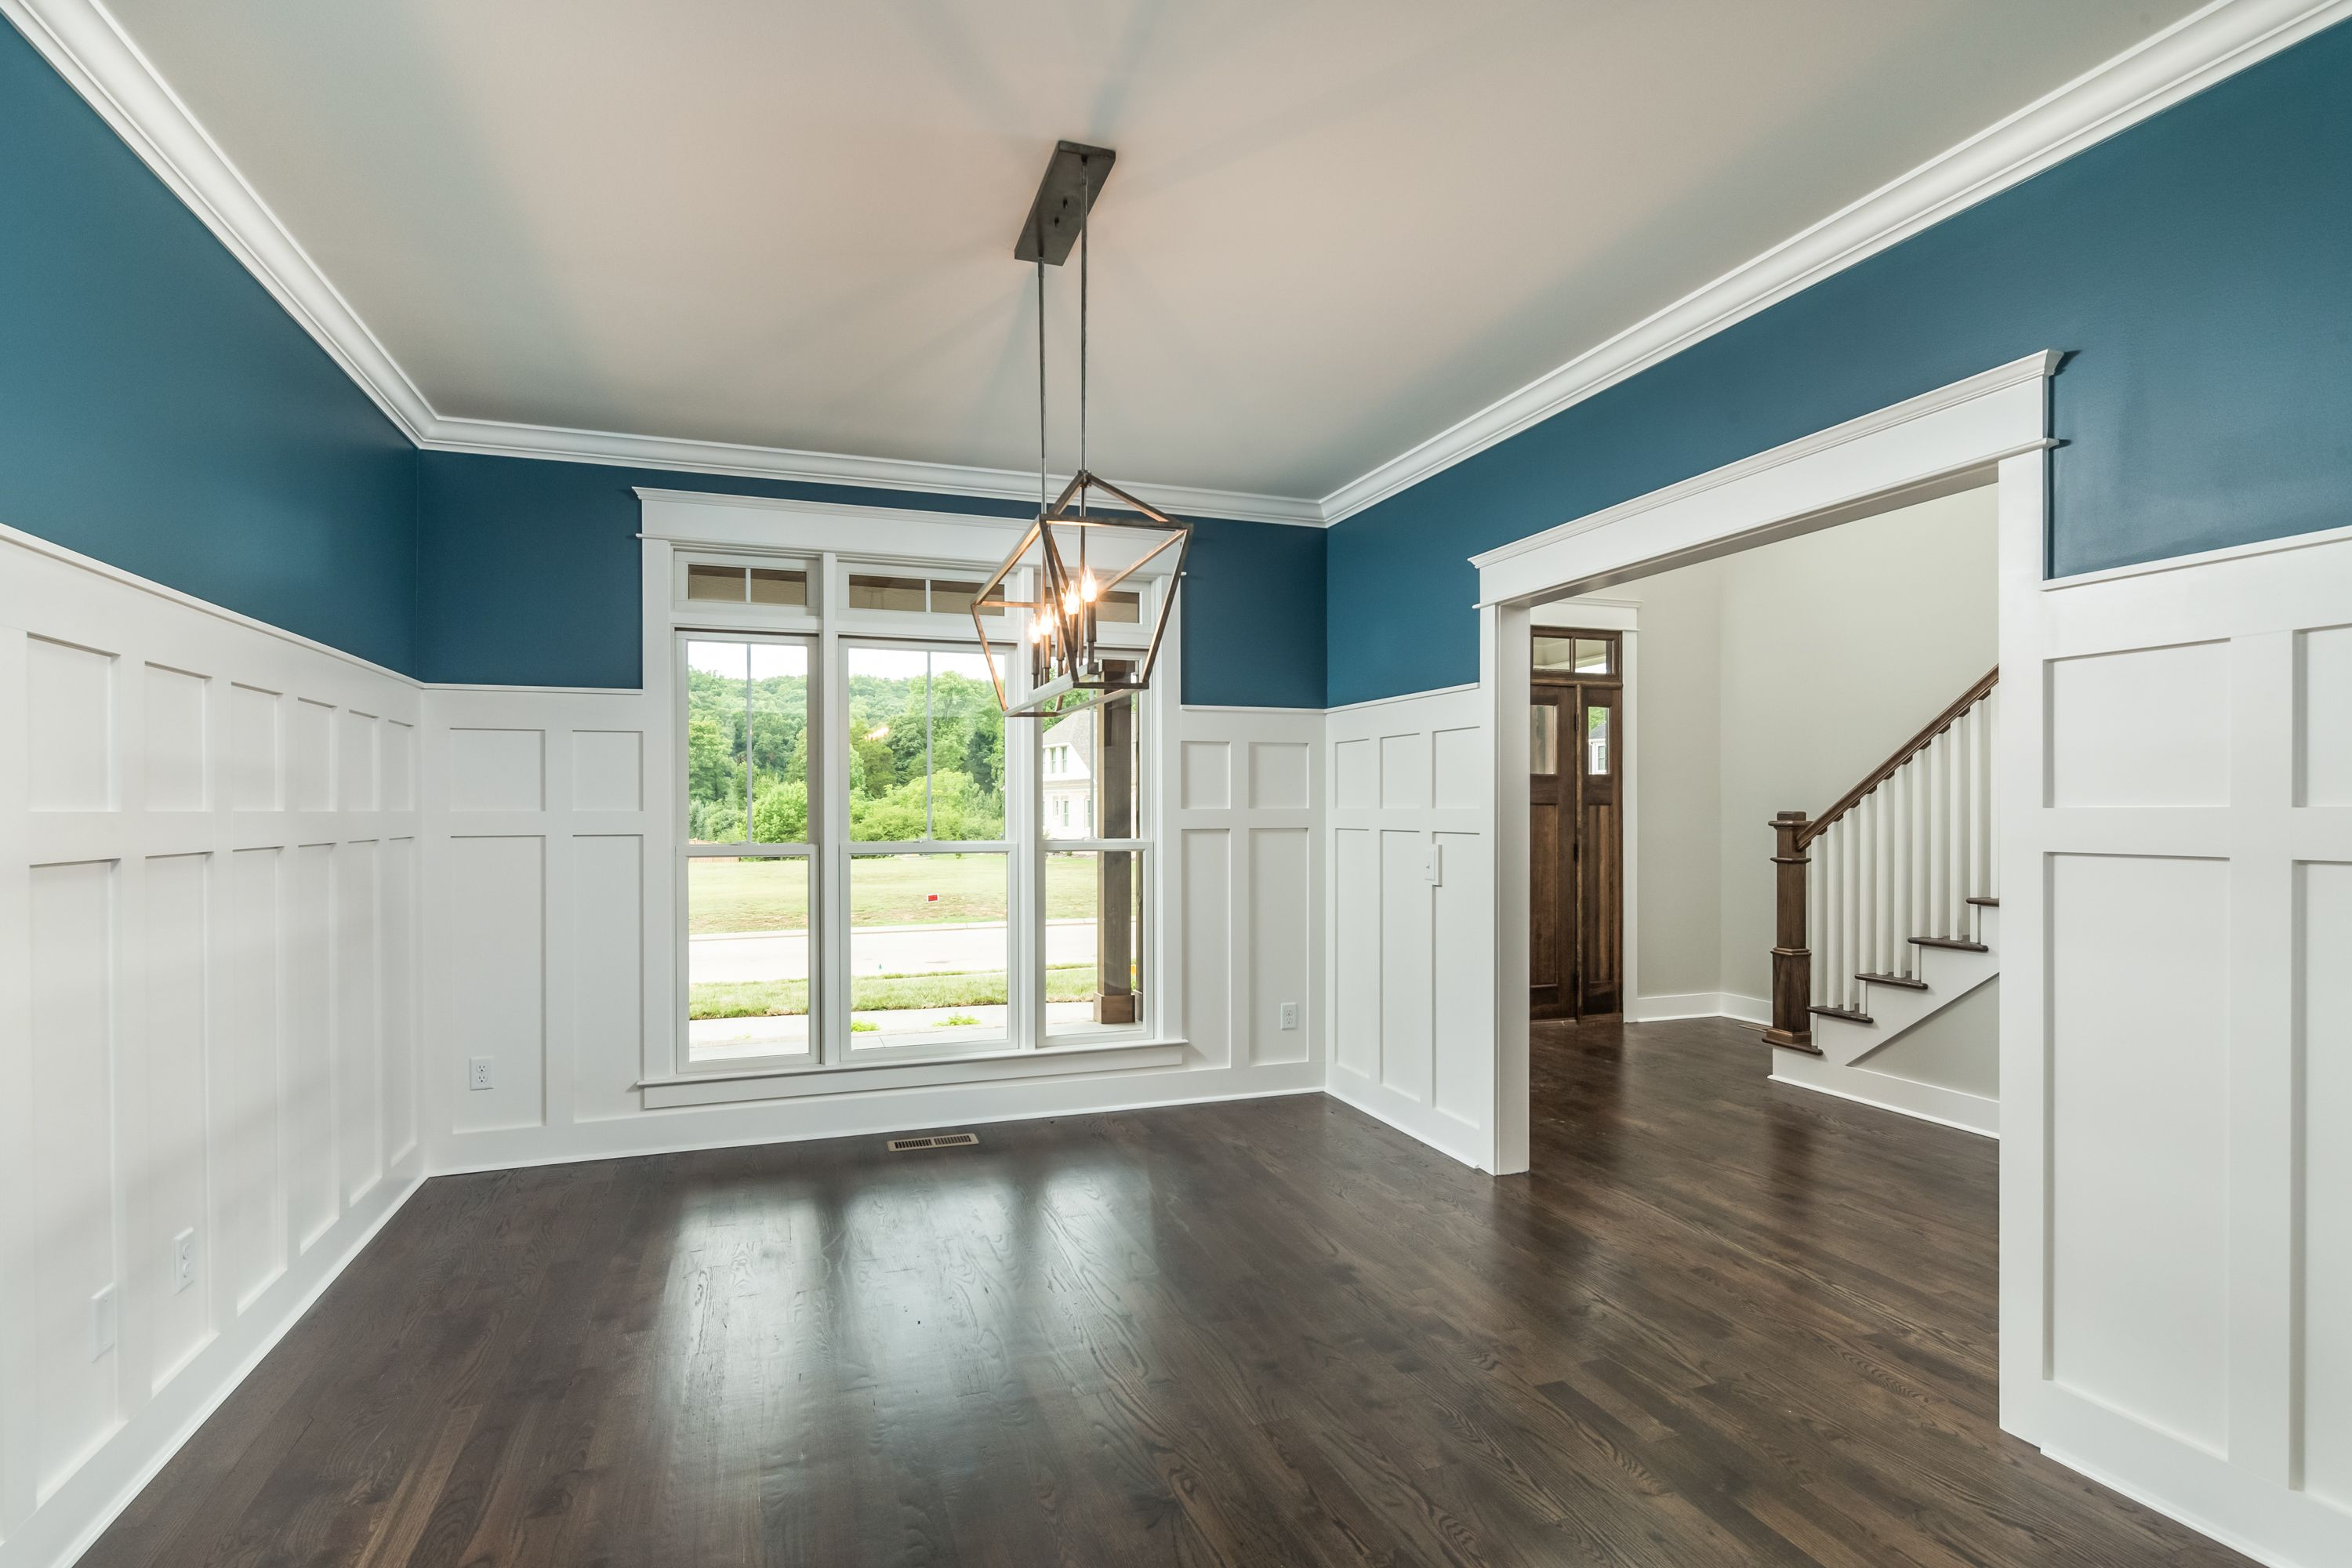 Beautiful Craftsman Style Trim Work With A Soothing Blue Paint In The Dining Room Area